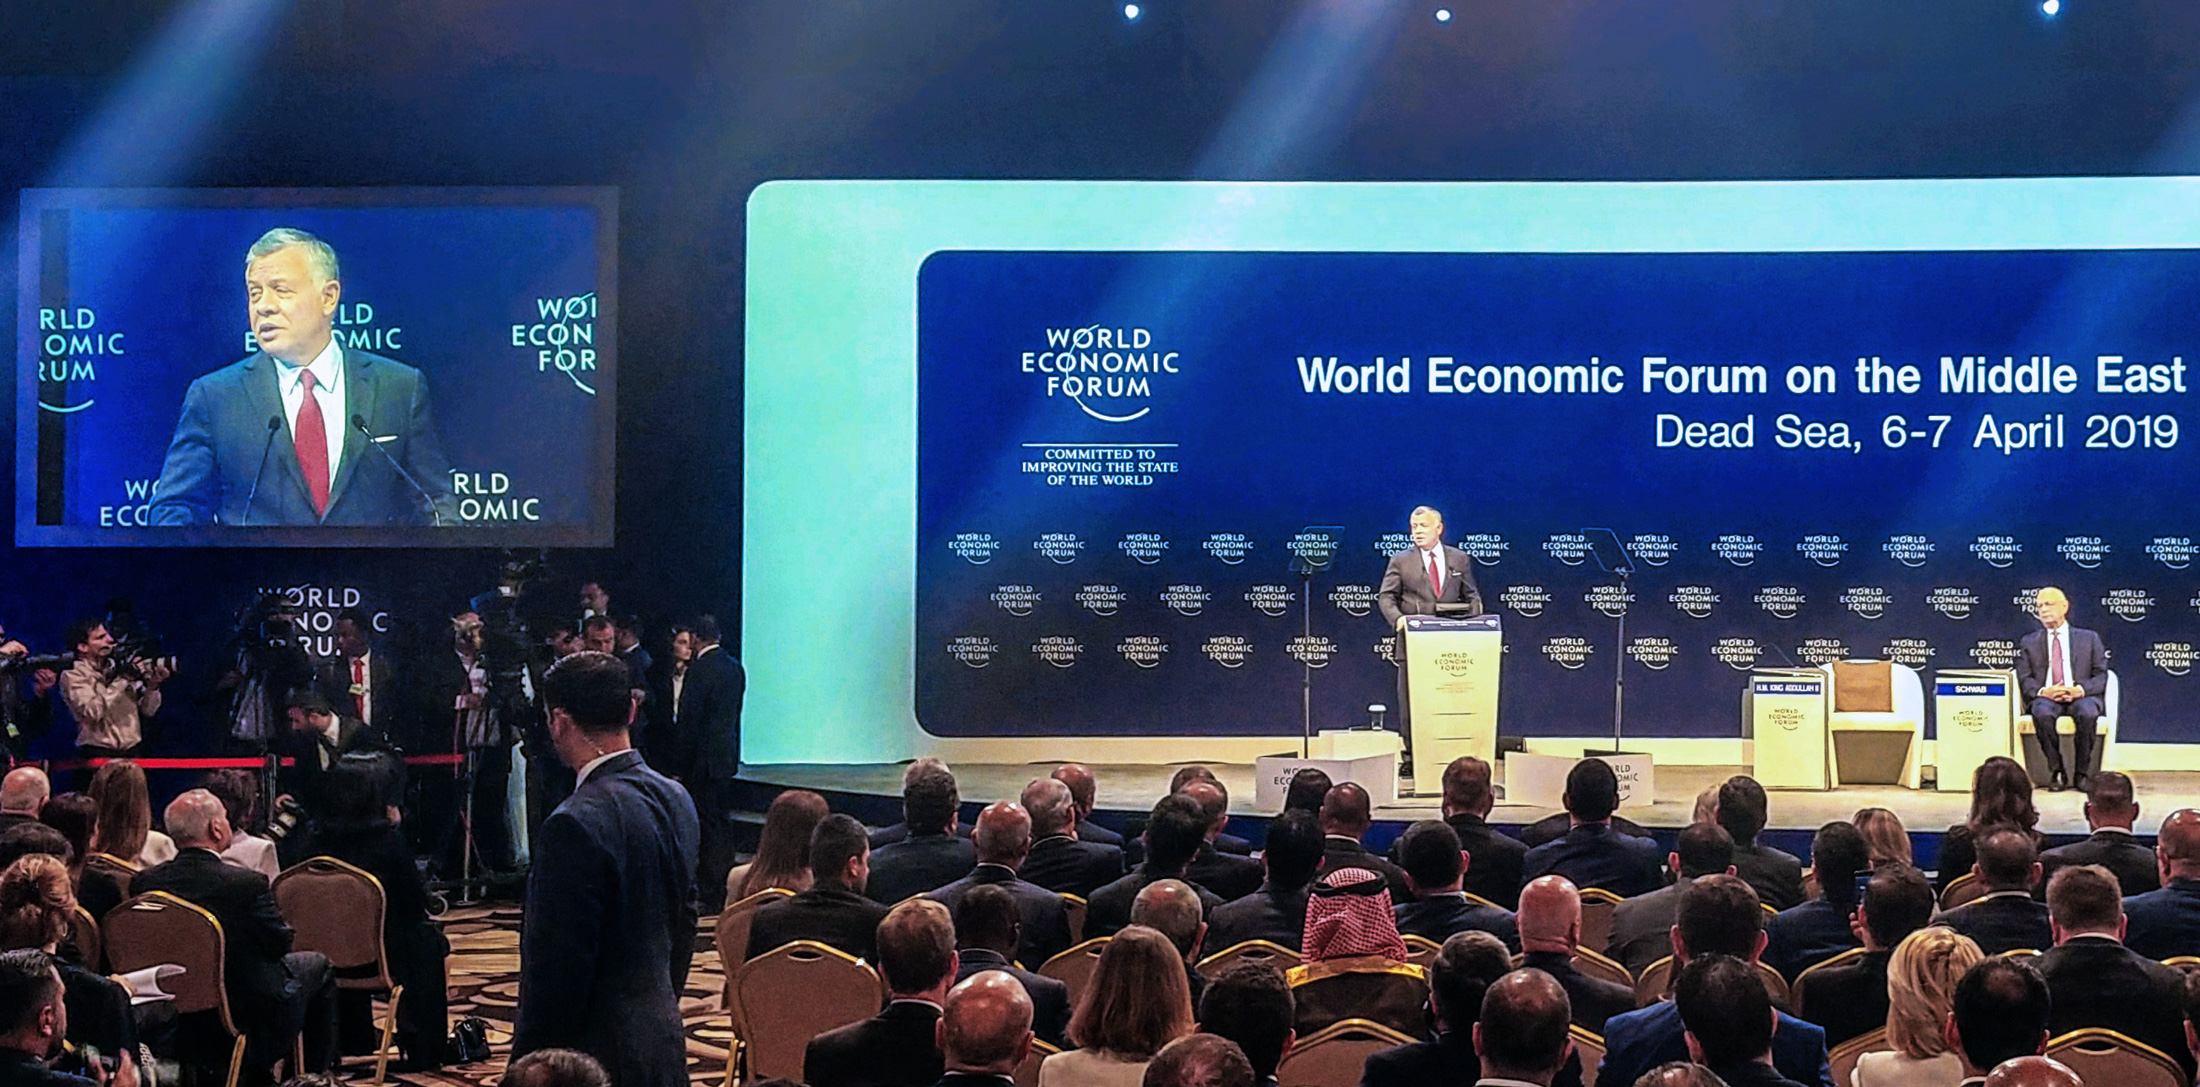 King Abdullah II of Jordan addressing the World Economic Forum at the Dead Sea